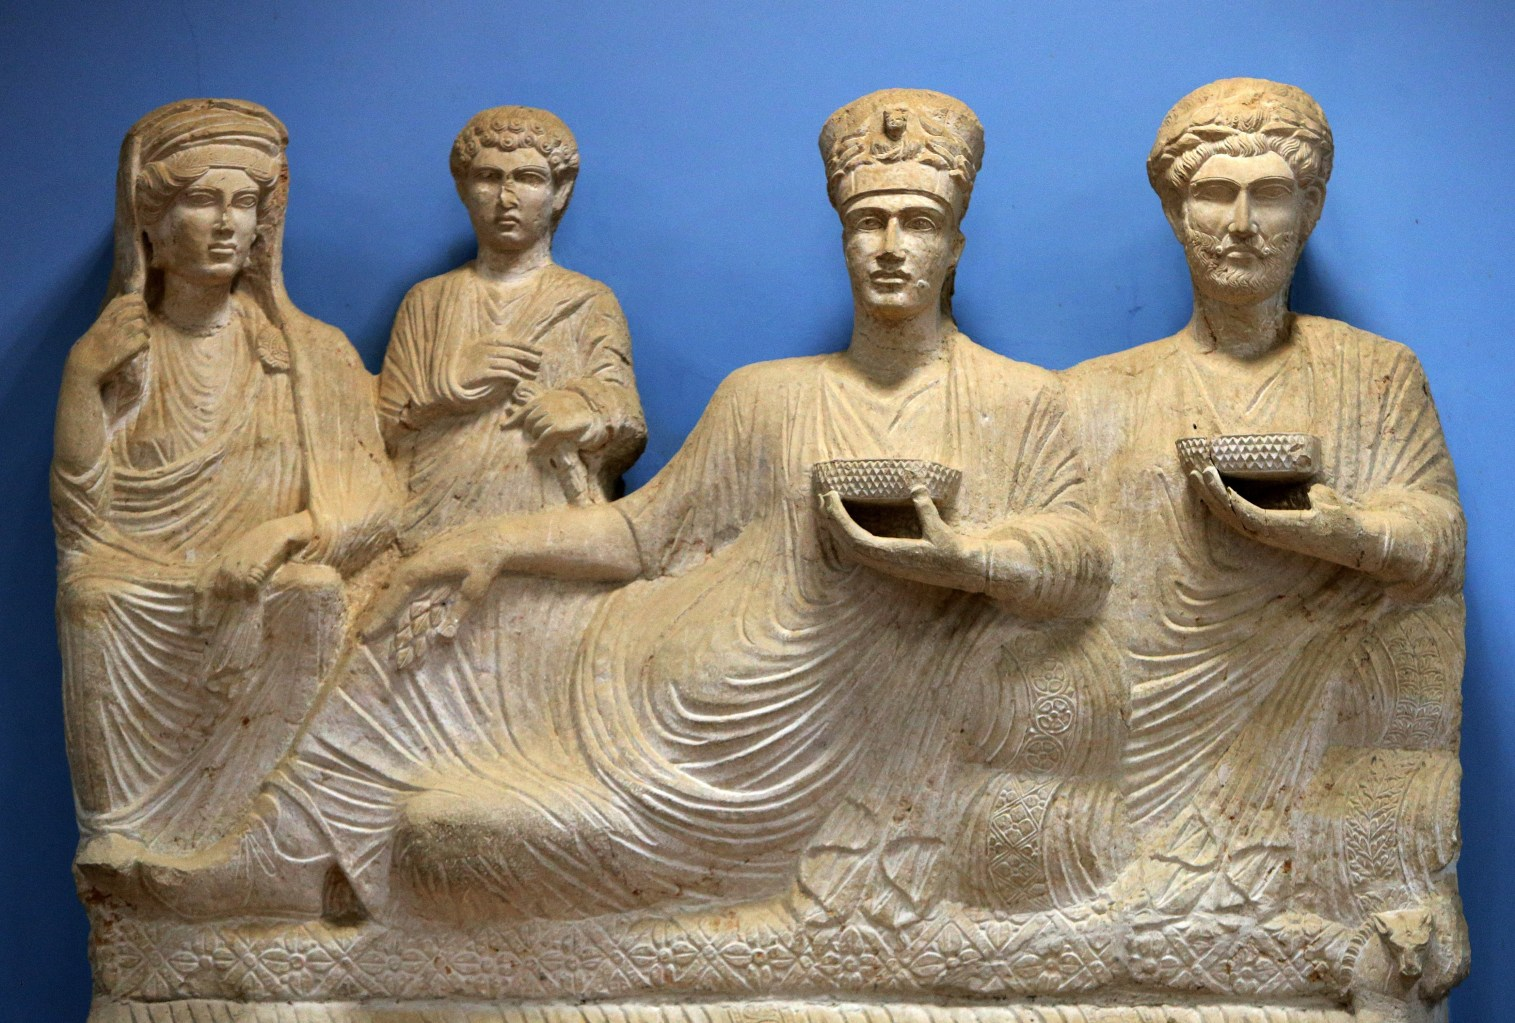 A picture taken on March 14, 2014 shows a sculpture depicting a rich family from the ancient Syrian oasis city of Palmyra, 215 kilometres northeast of Damascus, displayed at the city's museum. From the 1st to the 2nd century, the art and architecture of Palmyra, standing at the crossroads of several civilizations, married Graeco-Roman techniques with local traditions and Persian influences. AFP PHOTO/JOSEPH EID        (Photo credit should read JOSEPH EID/AFP/Getty Images)